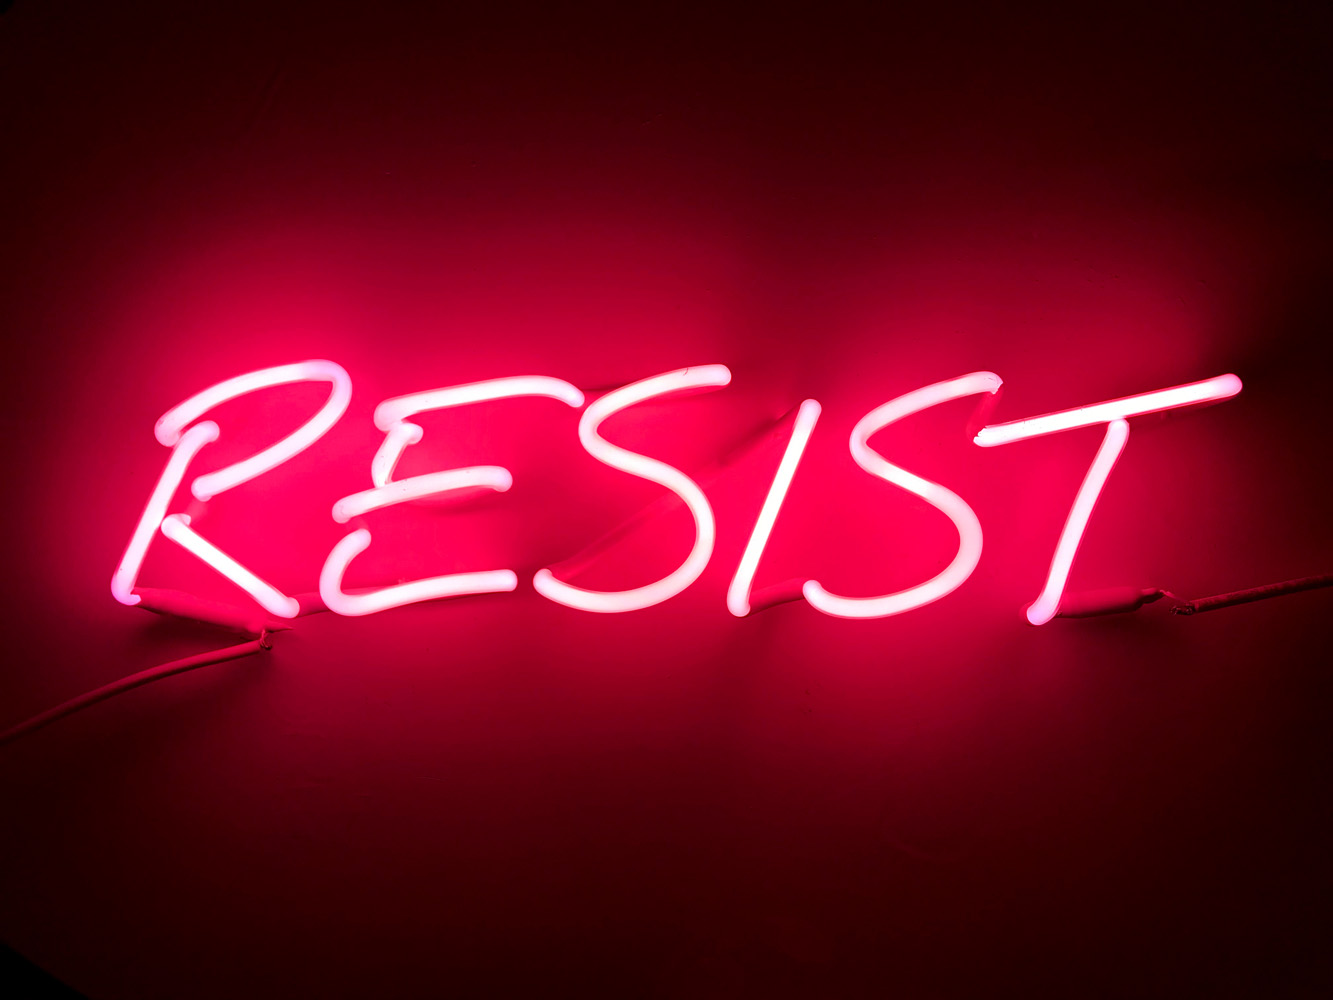 Indira-Cesarine-22RESIST-NOW22-2018-Neon-Sculpture-02x.jpg